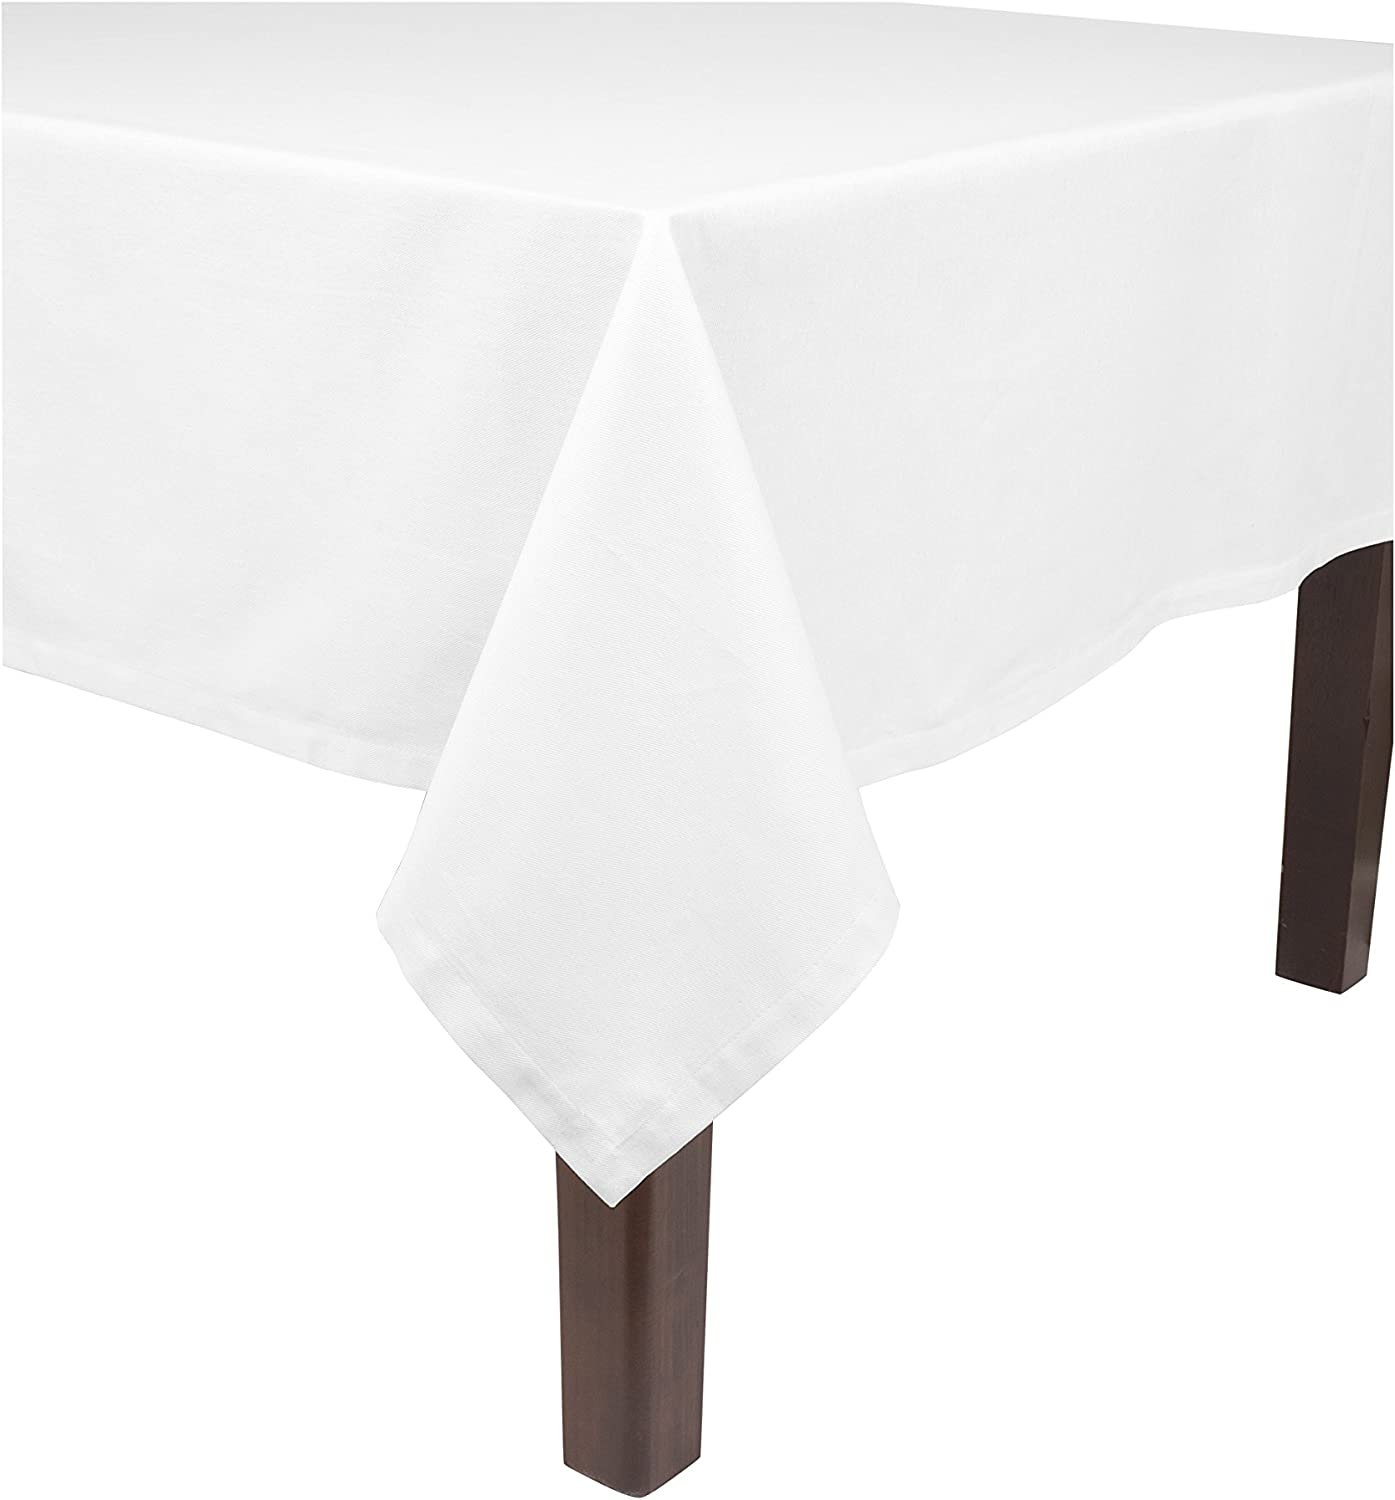 "KAF Home Banquet Tablecloth in White, 90"" by 156"", 100% Cotton, Machine Washable"